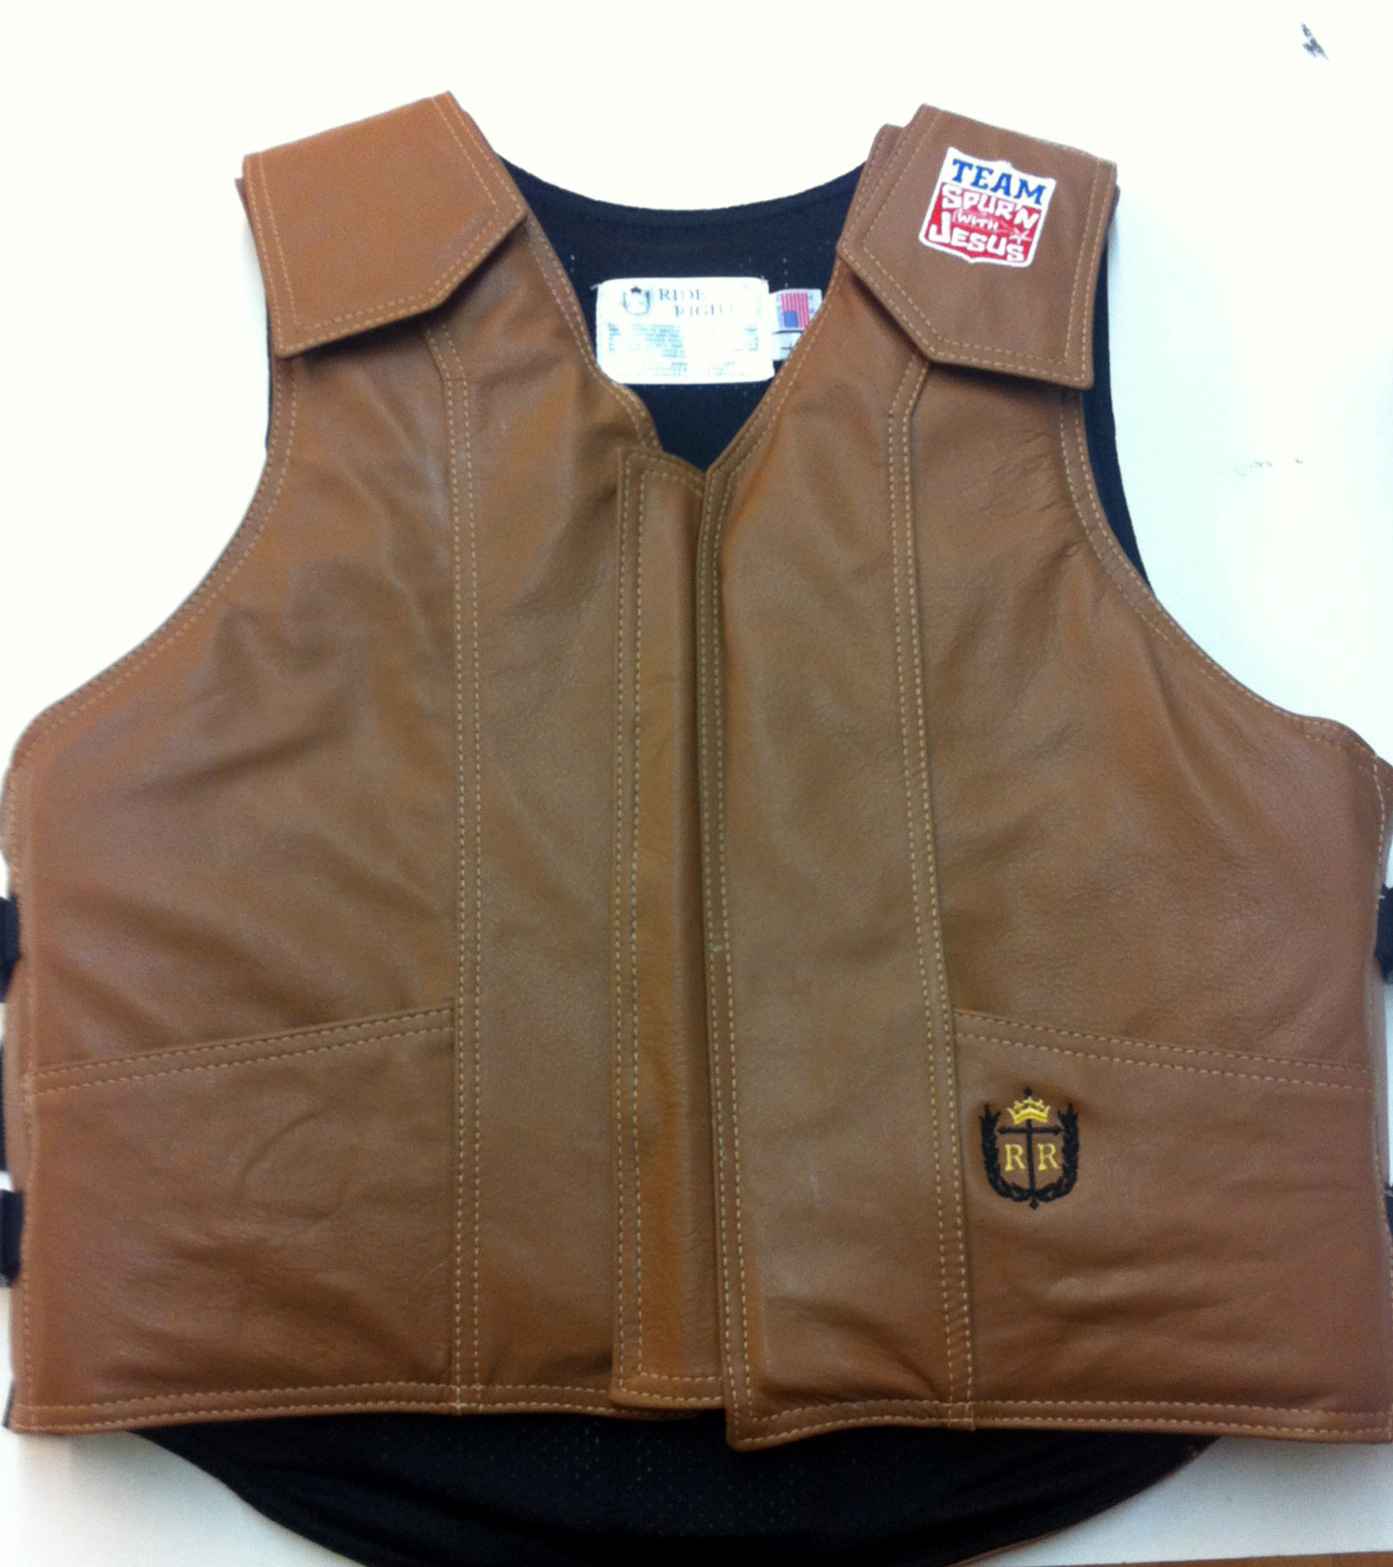 euipment Team Spurn with Jesus Saddle Tan Vest